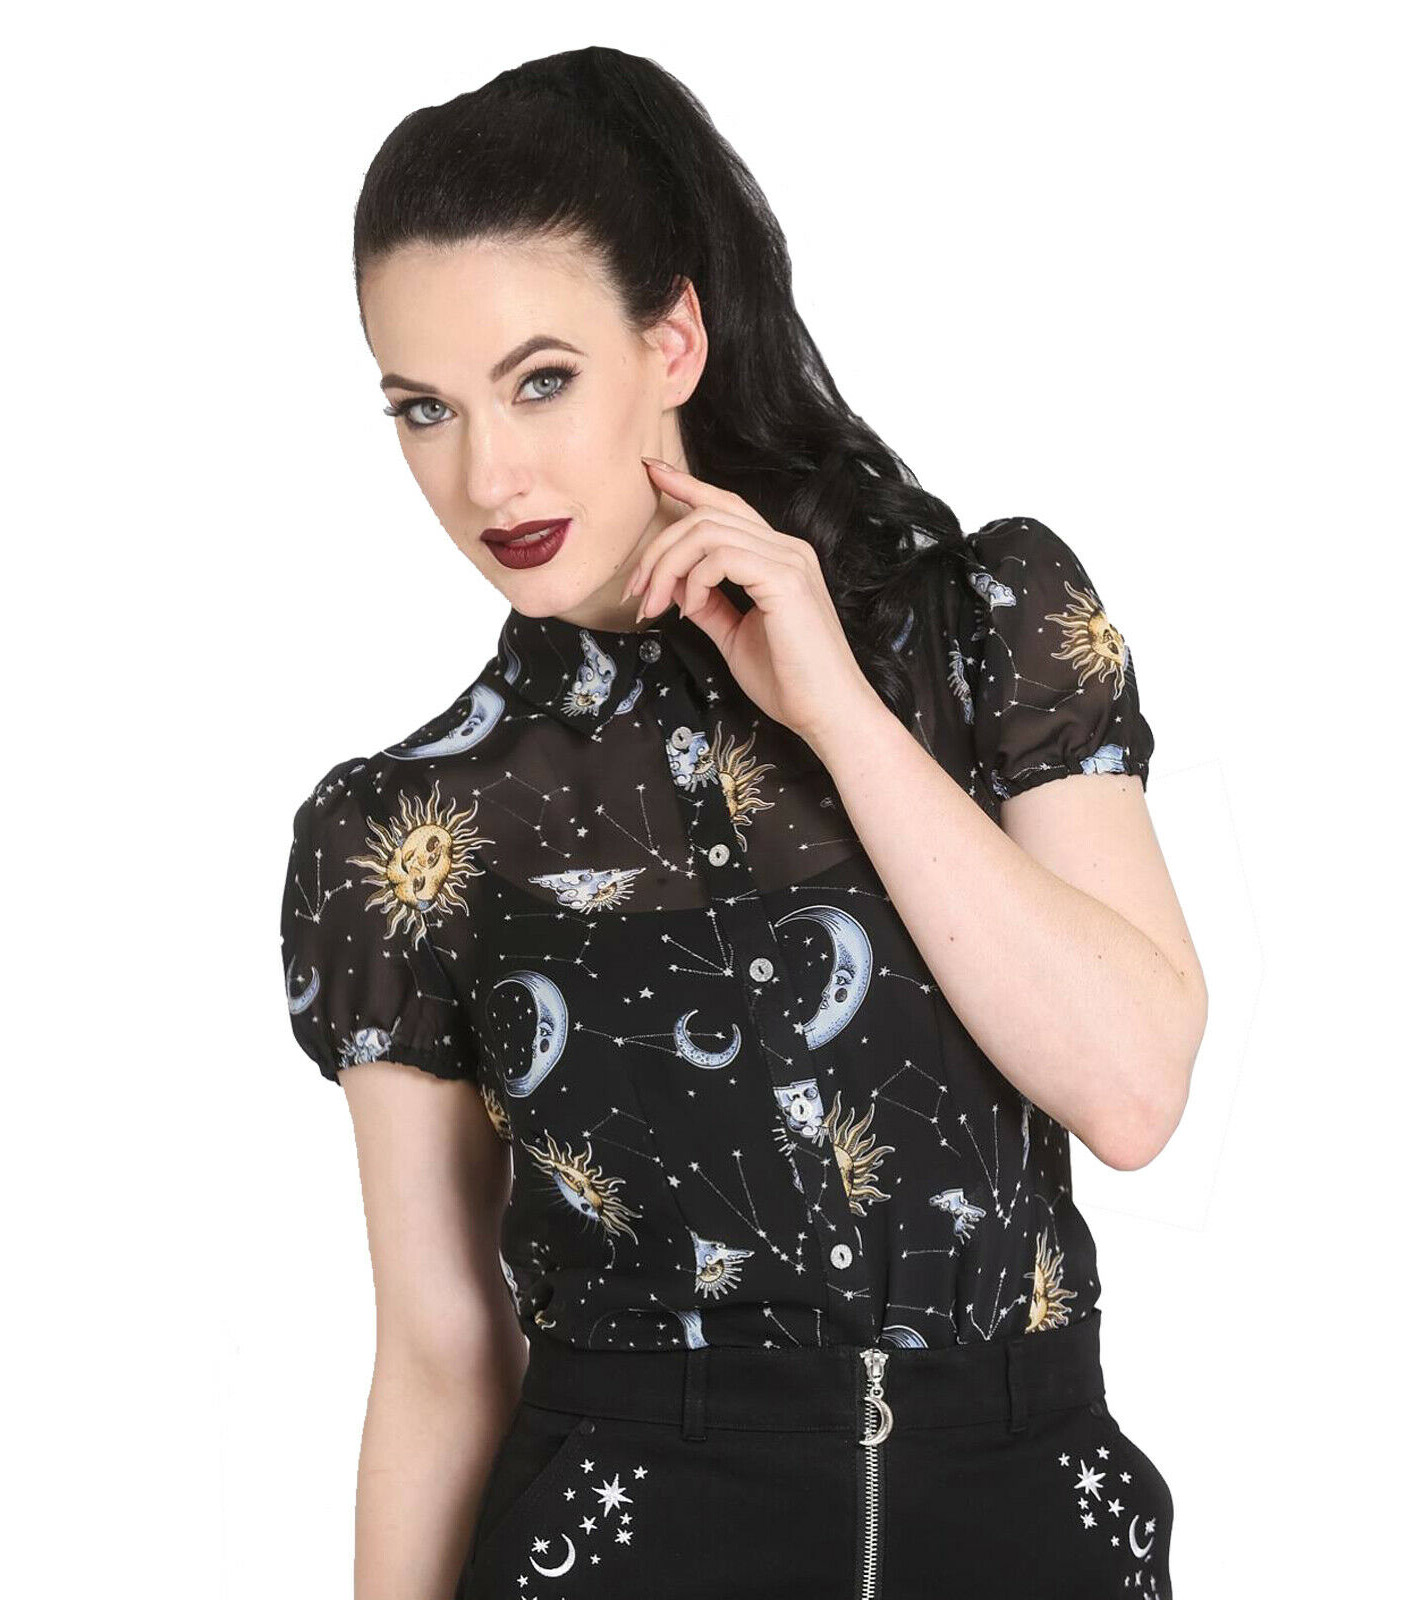 Hell-Bunny-50s-Shirt-Top-Gothic-Black-Sun-Moon-Stars-SOLARIS-Blouse-All-Sizes thumbnail 21